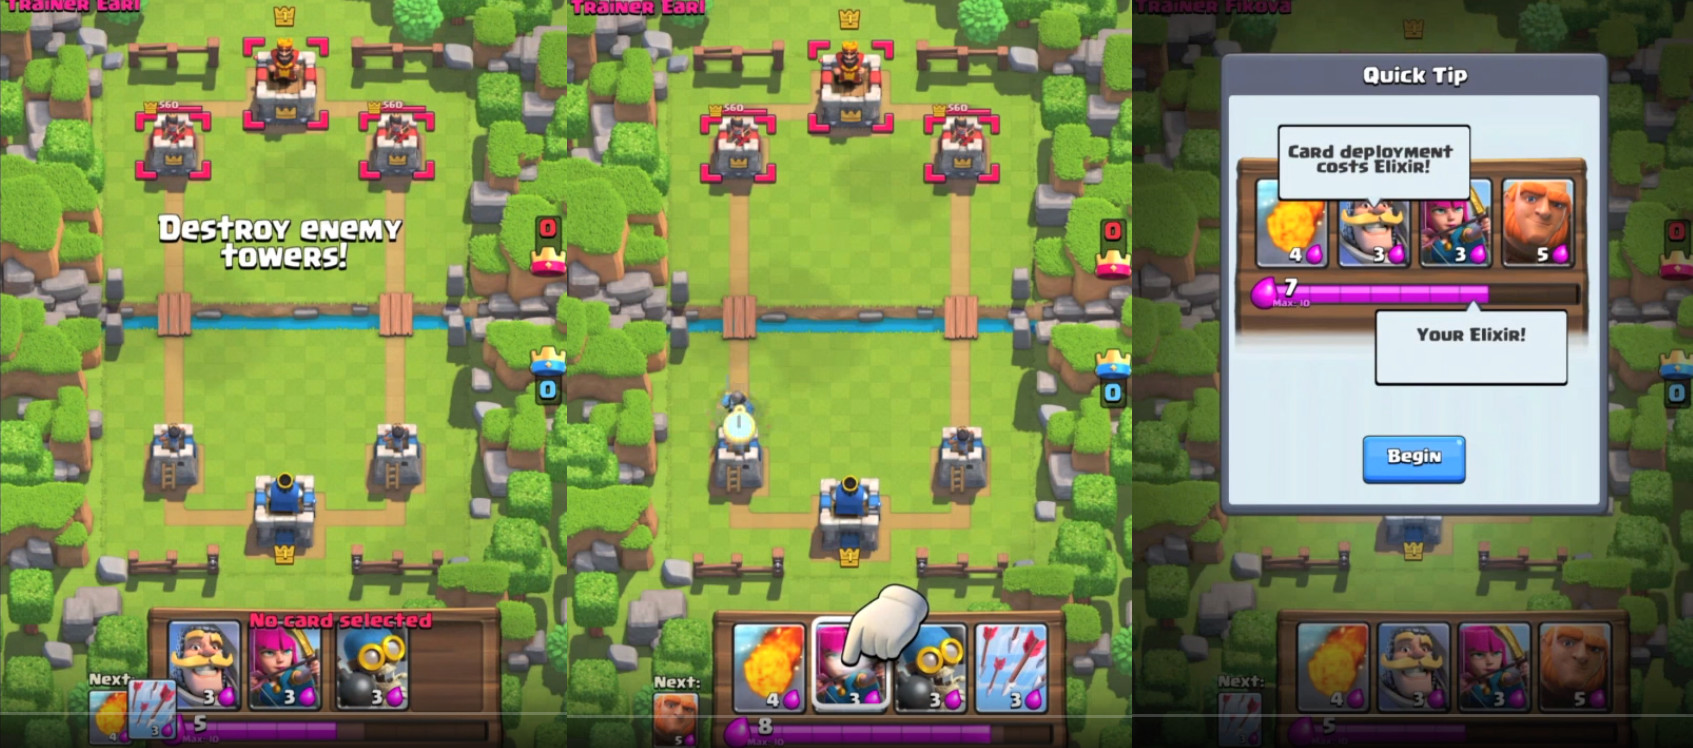 What Video Games taught us about User Onboarding - Clash Royale Video Game Onboarding - Helppier Blog